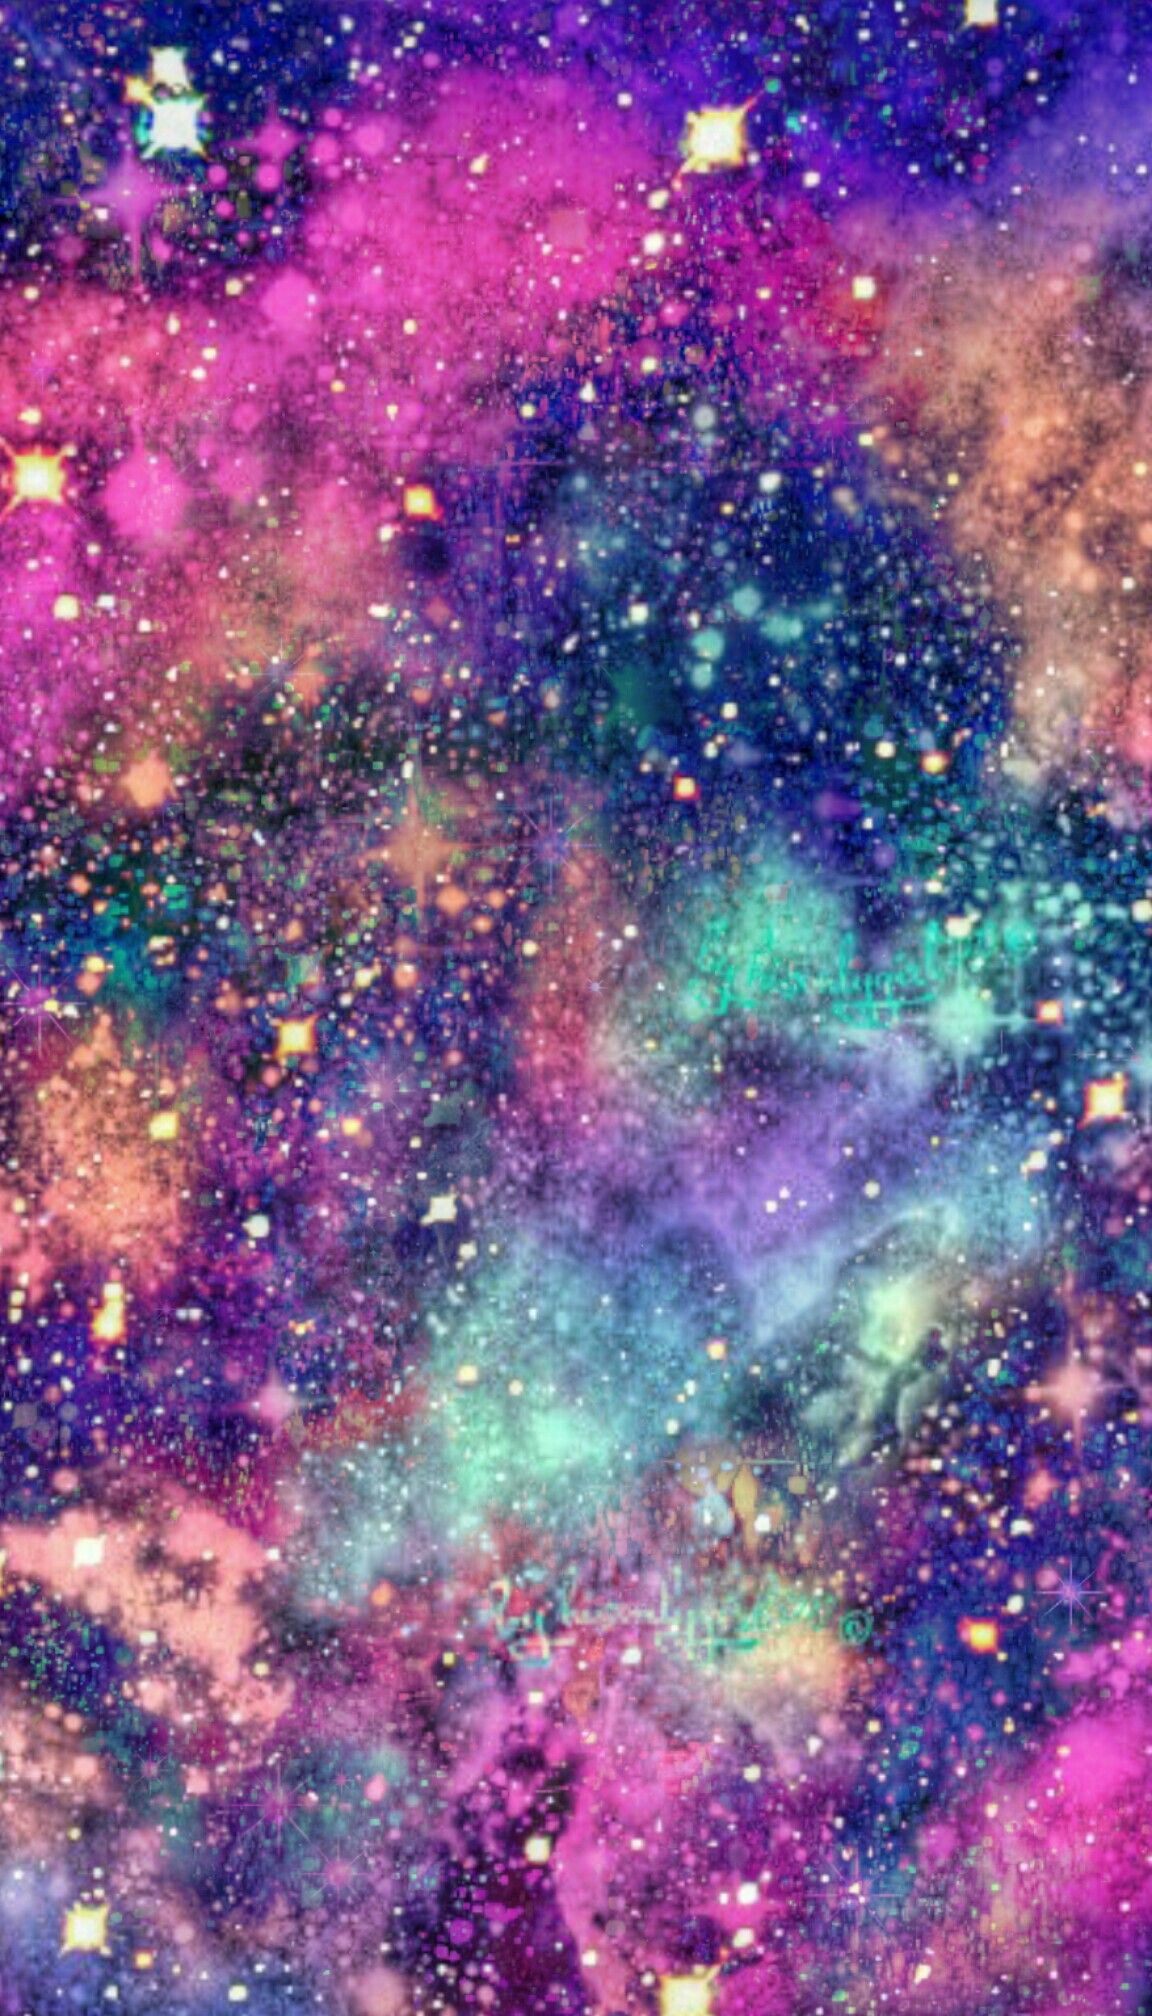 galaxy wallpaper I created for CocoPPa Achtergronden